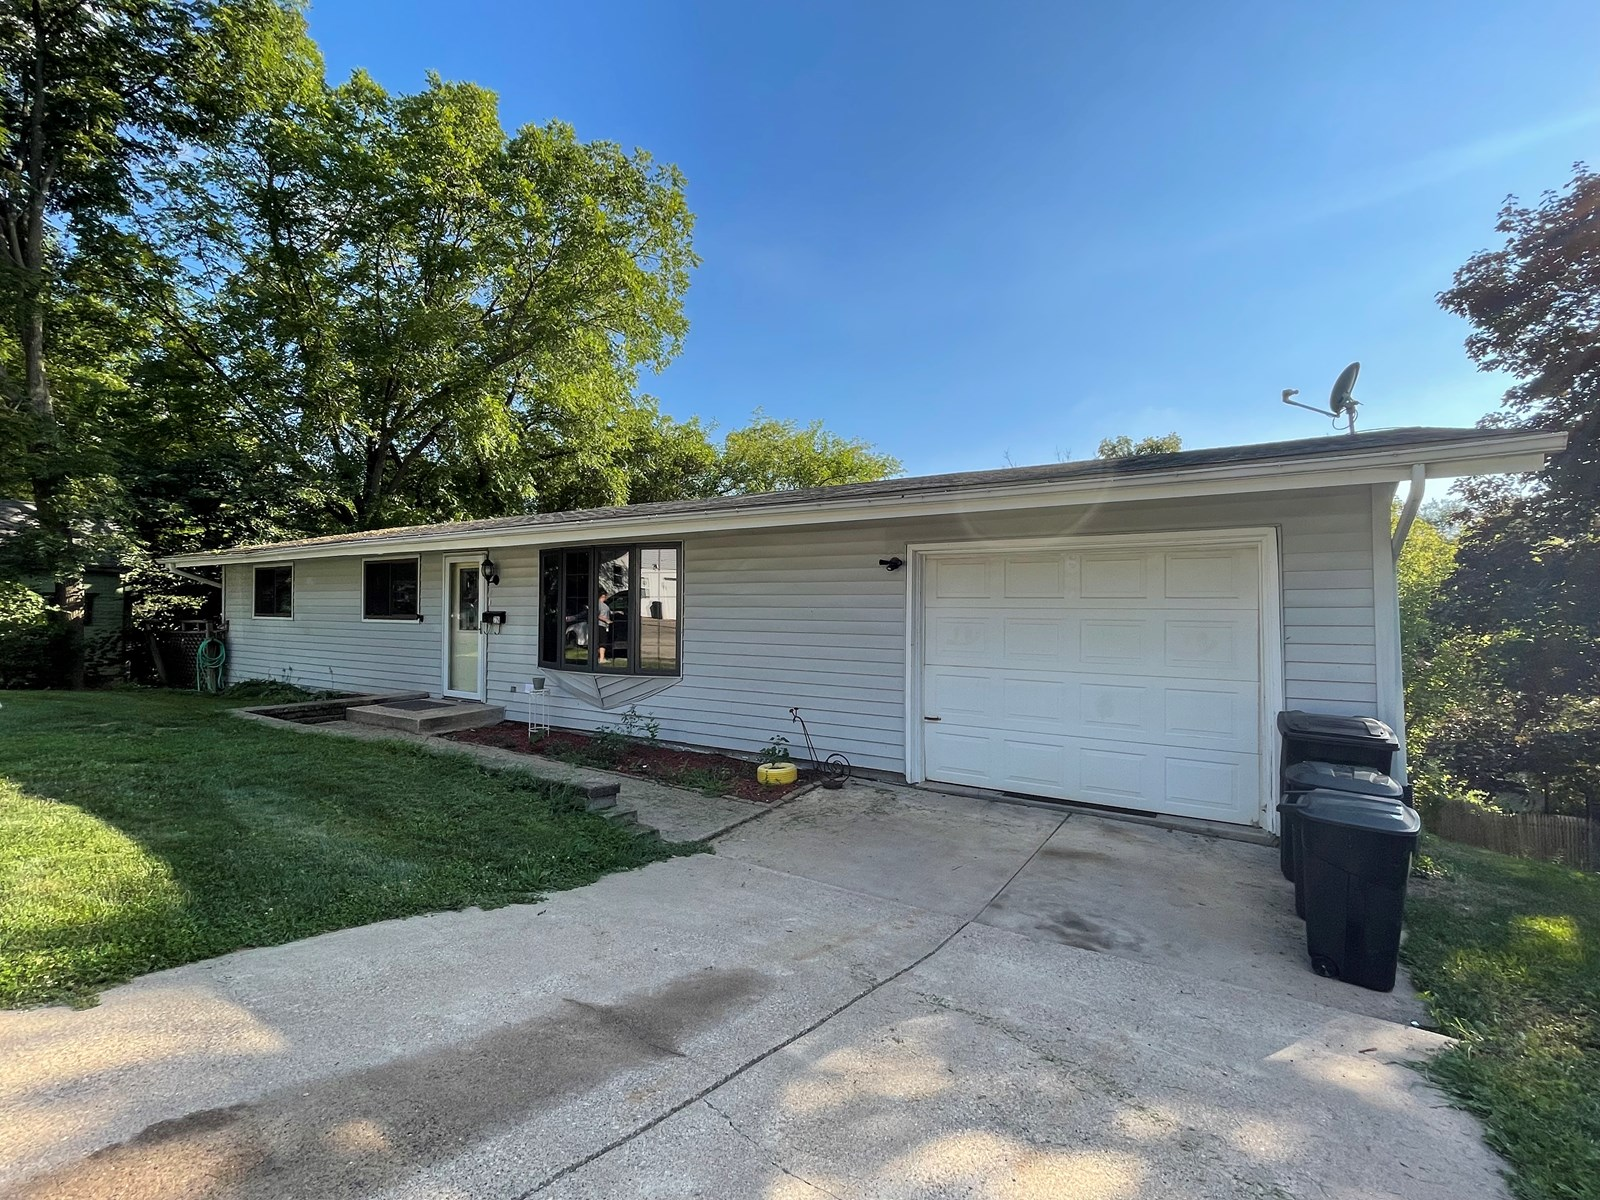 Ranch style home with garage